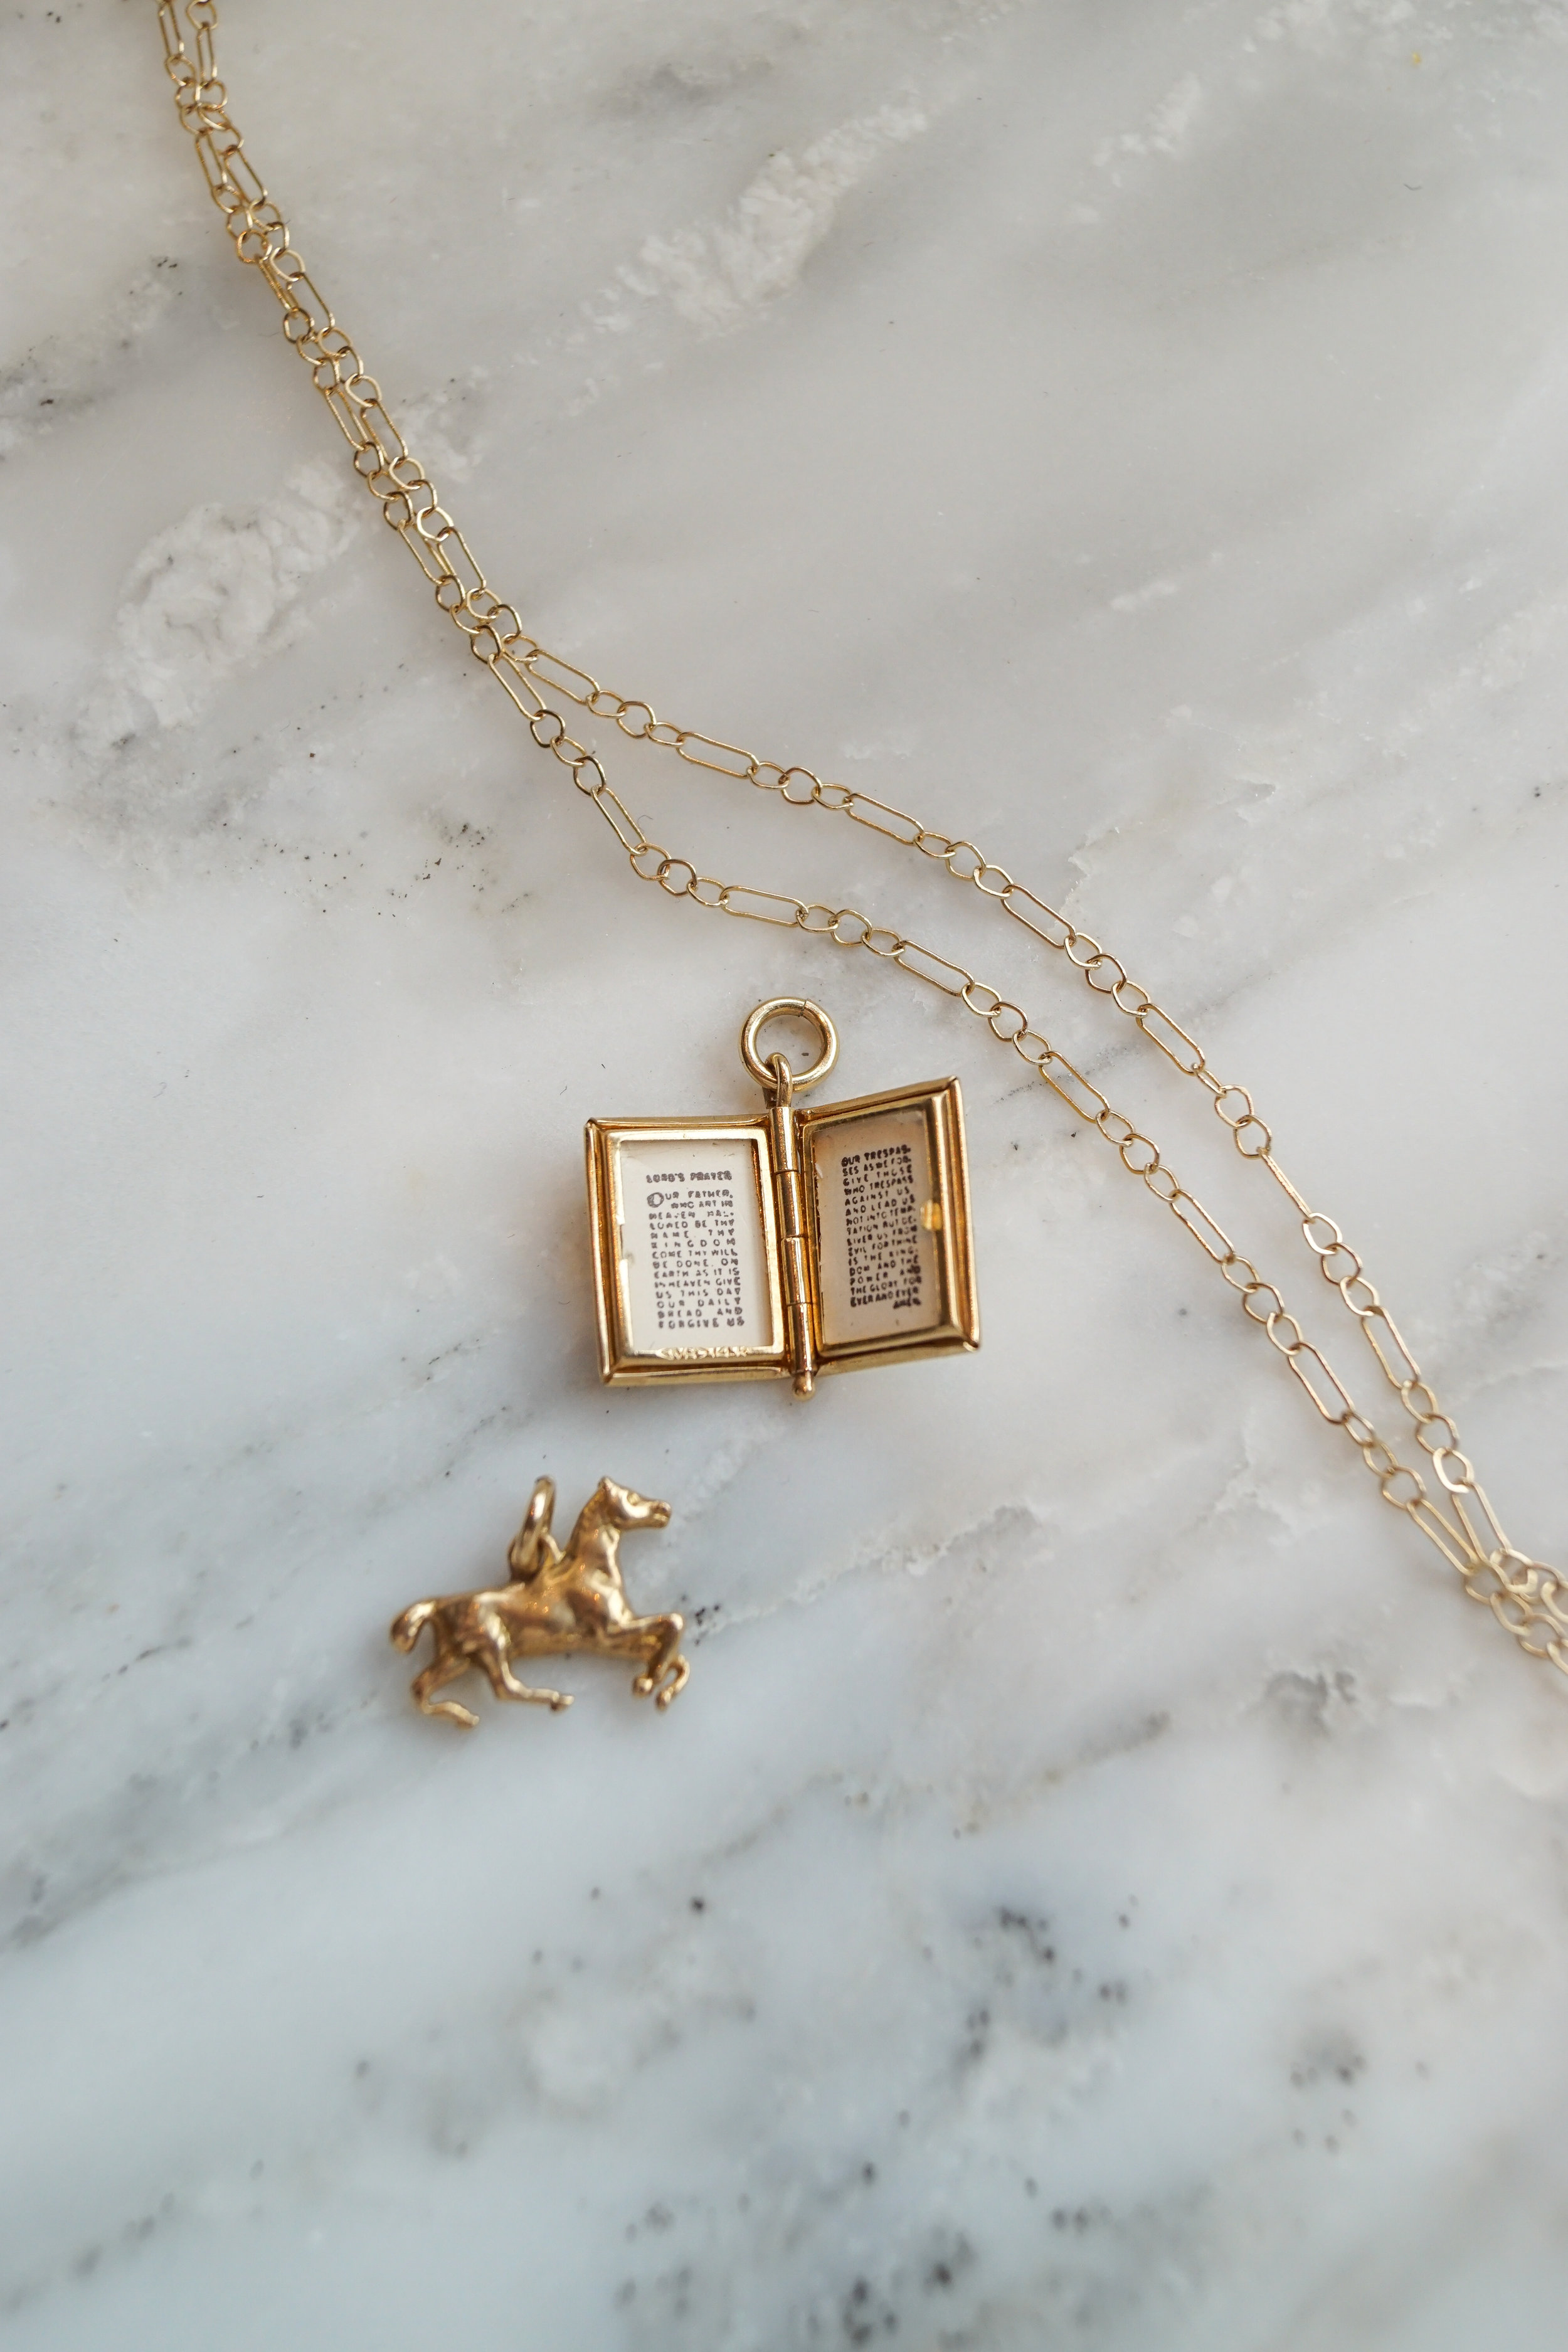 The Lord's Prayer book locket holds a complete script of the Lord's Prayer inside!